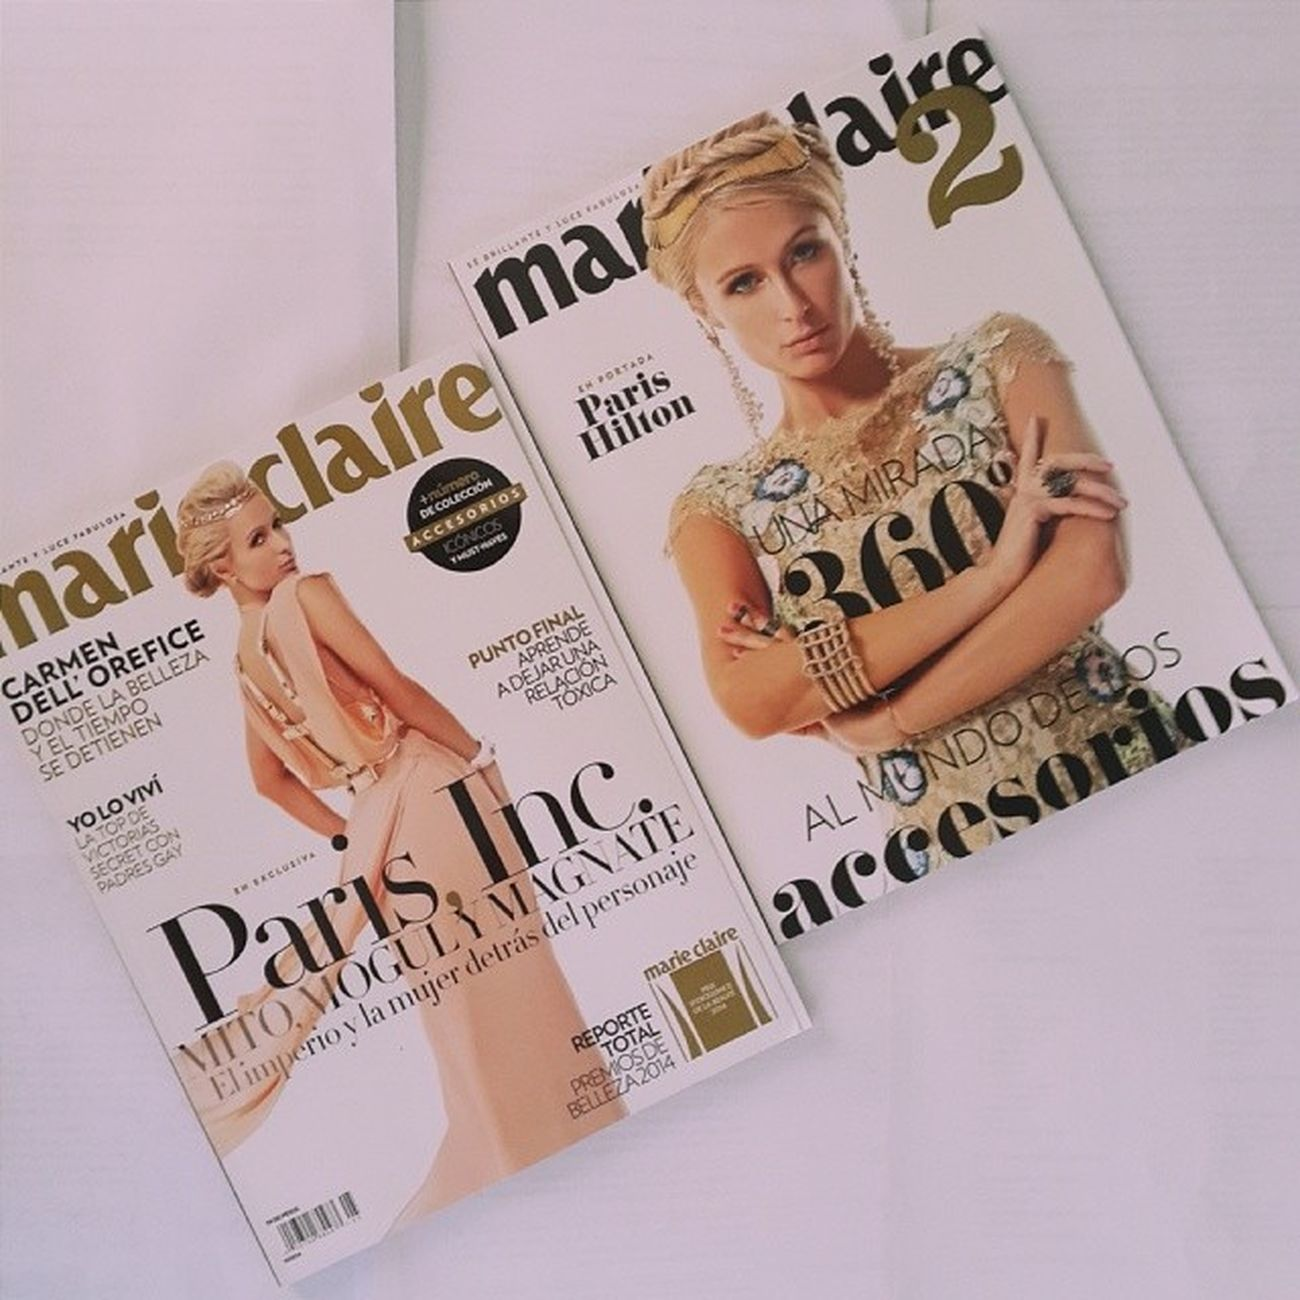 "A Goddess in a Bible . ? ""Mito , Mogul y magnate"". @ParisHilton doubleedition marieclaire2 issue fab magazine flawless"